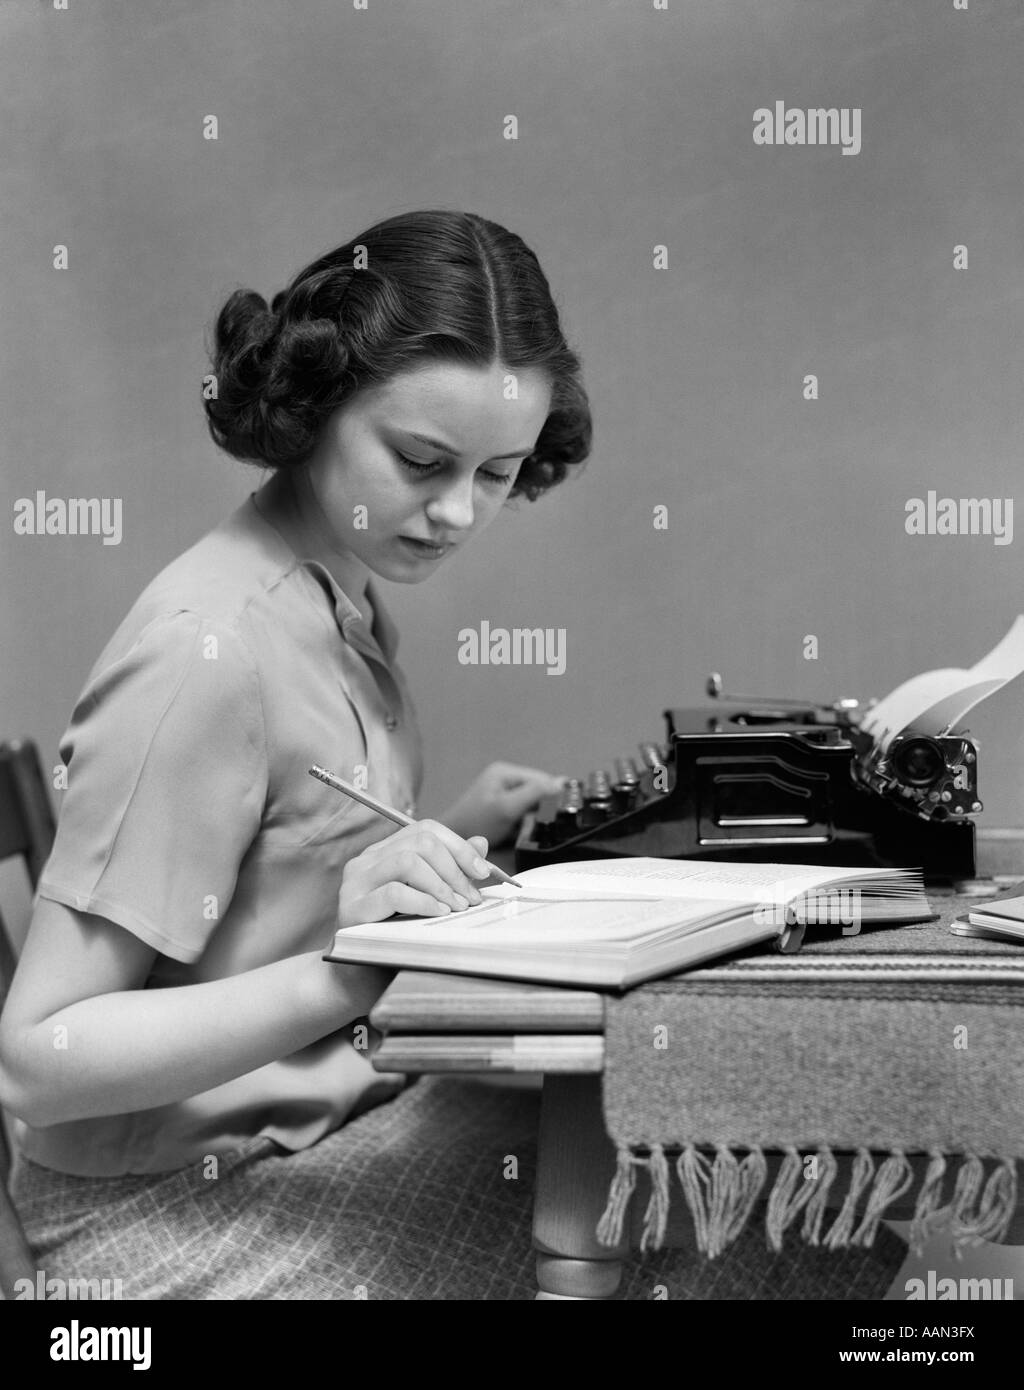 1930s YOUNG WOMAN STUDENT SITTING AT TABLE WITH TYPEWRITER AND BOOK STUDYING - Stock Image